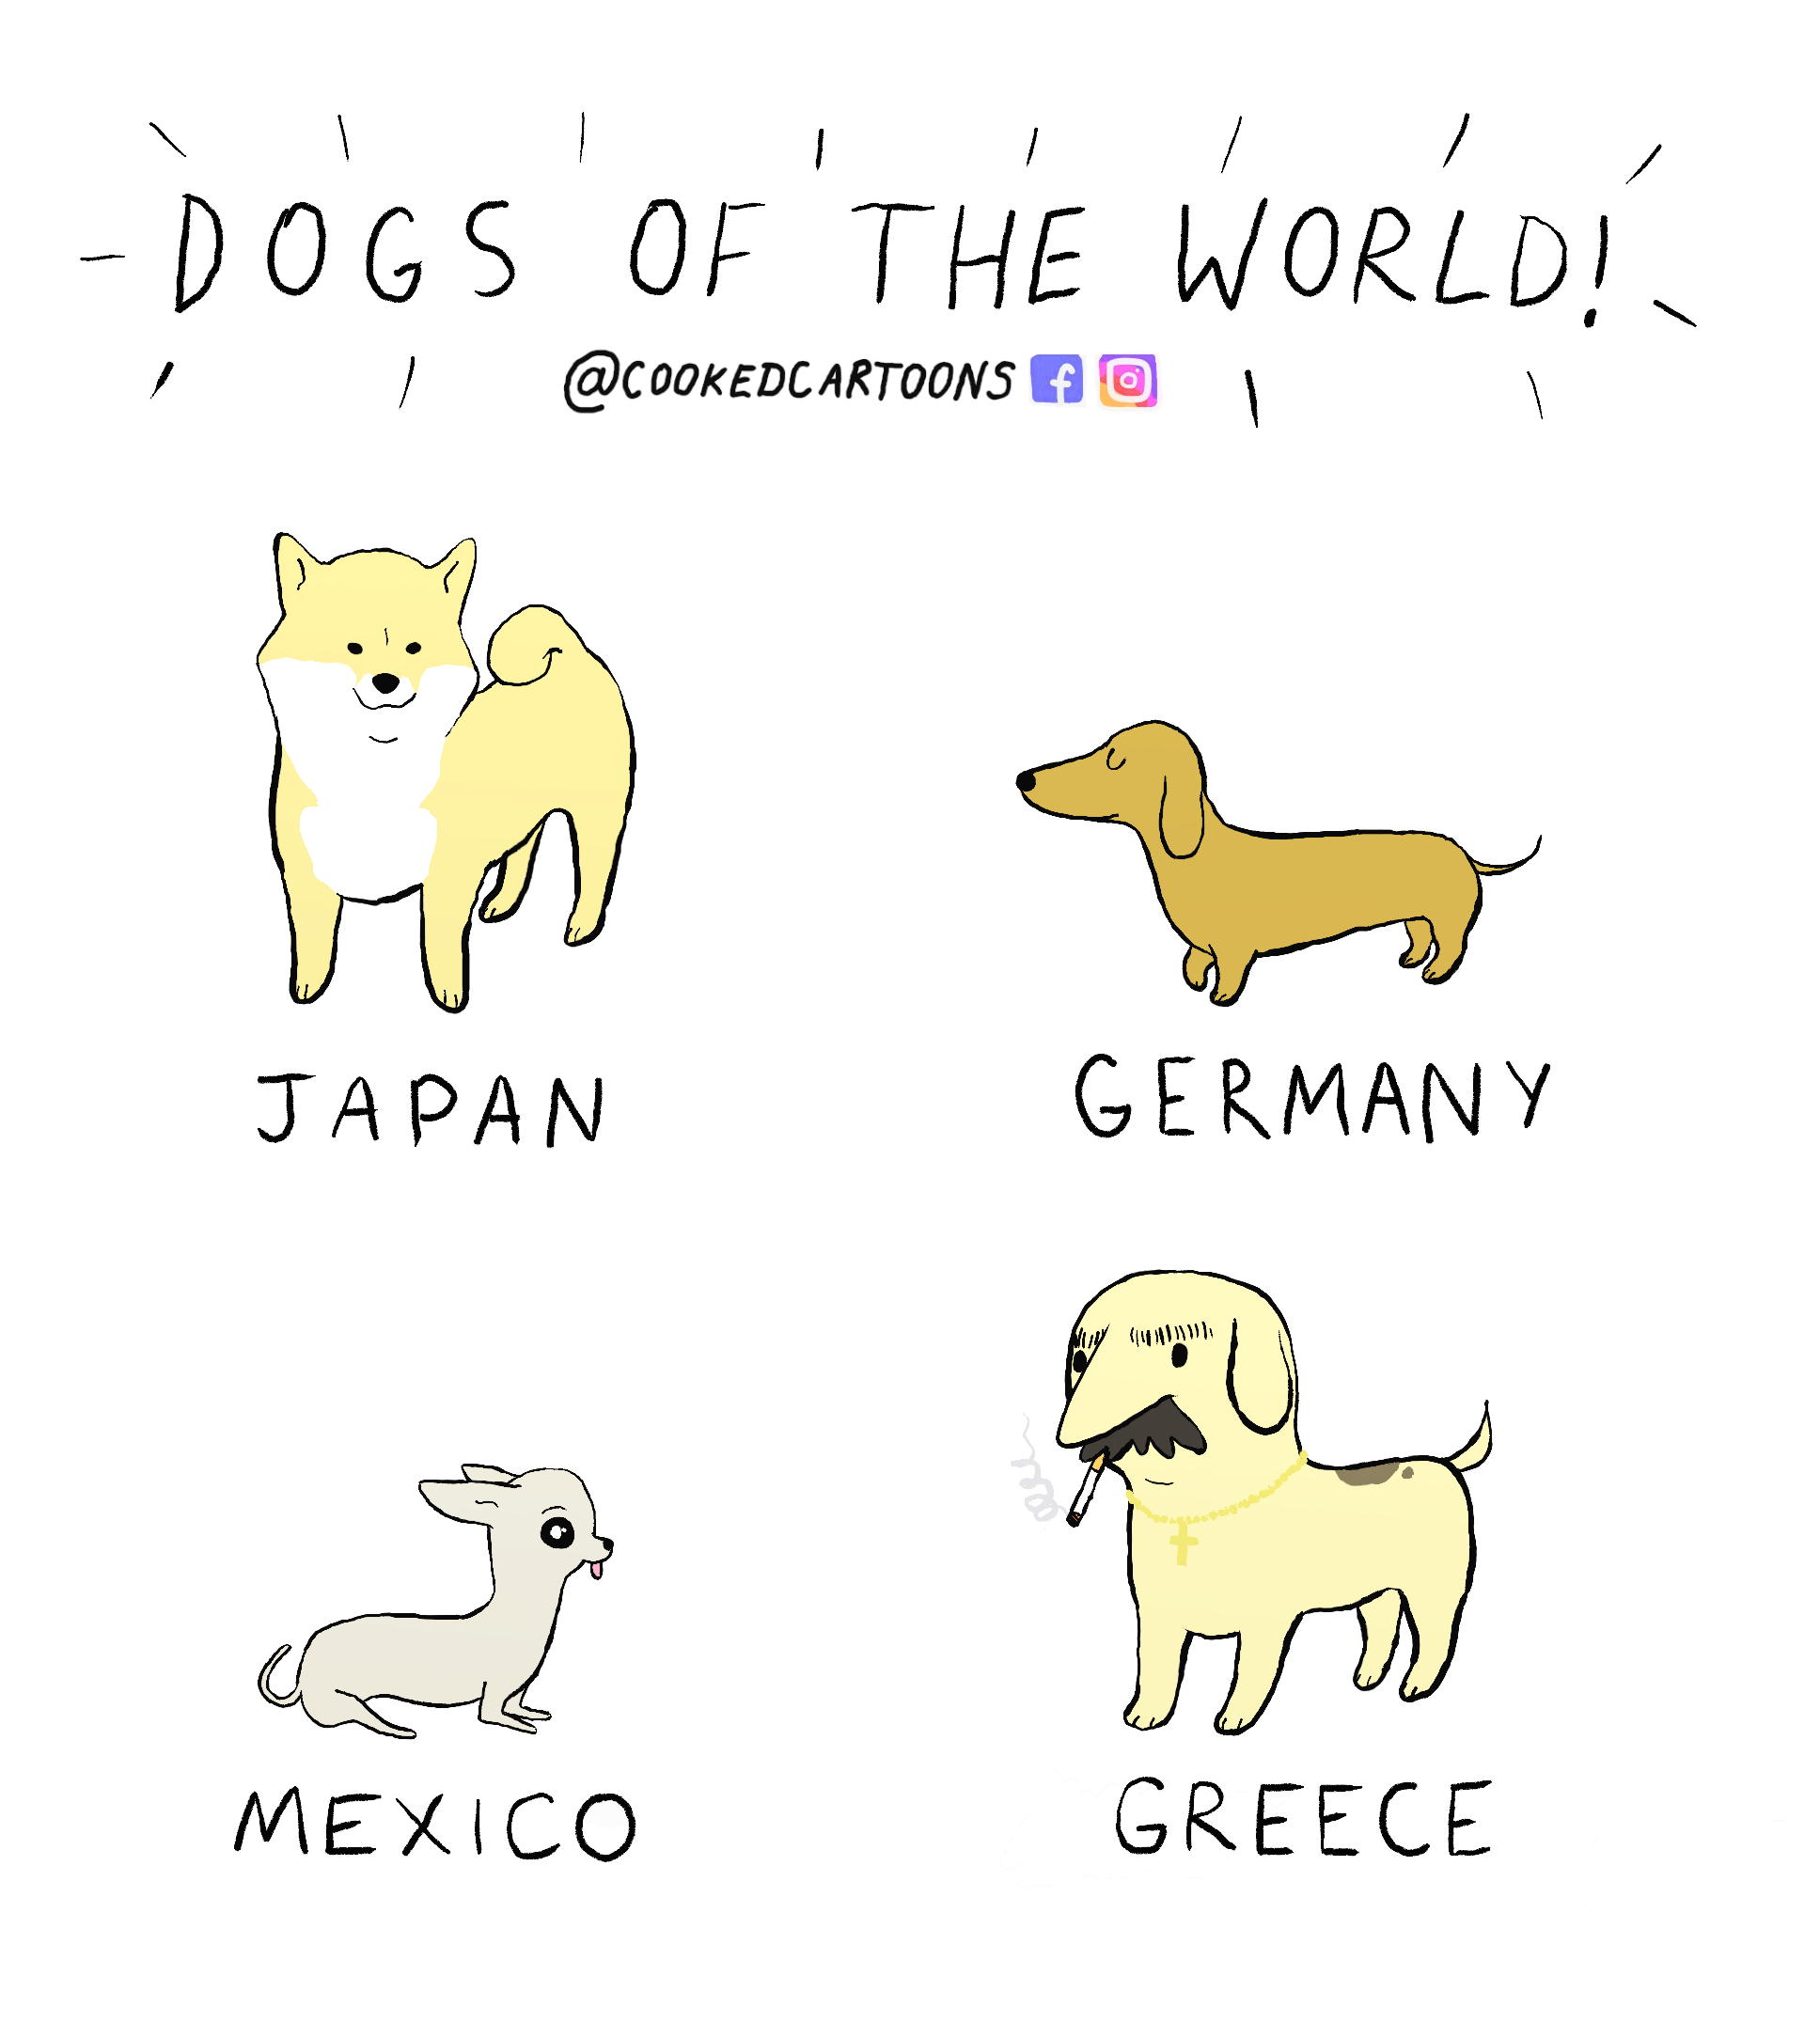 Dogs of the world!